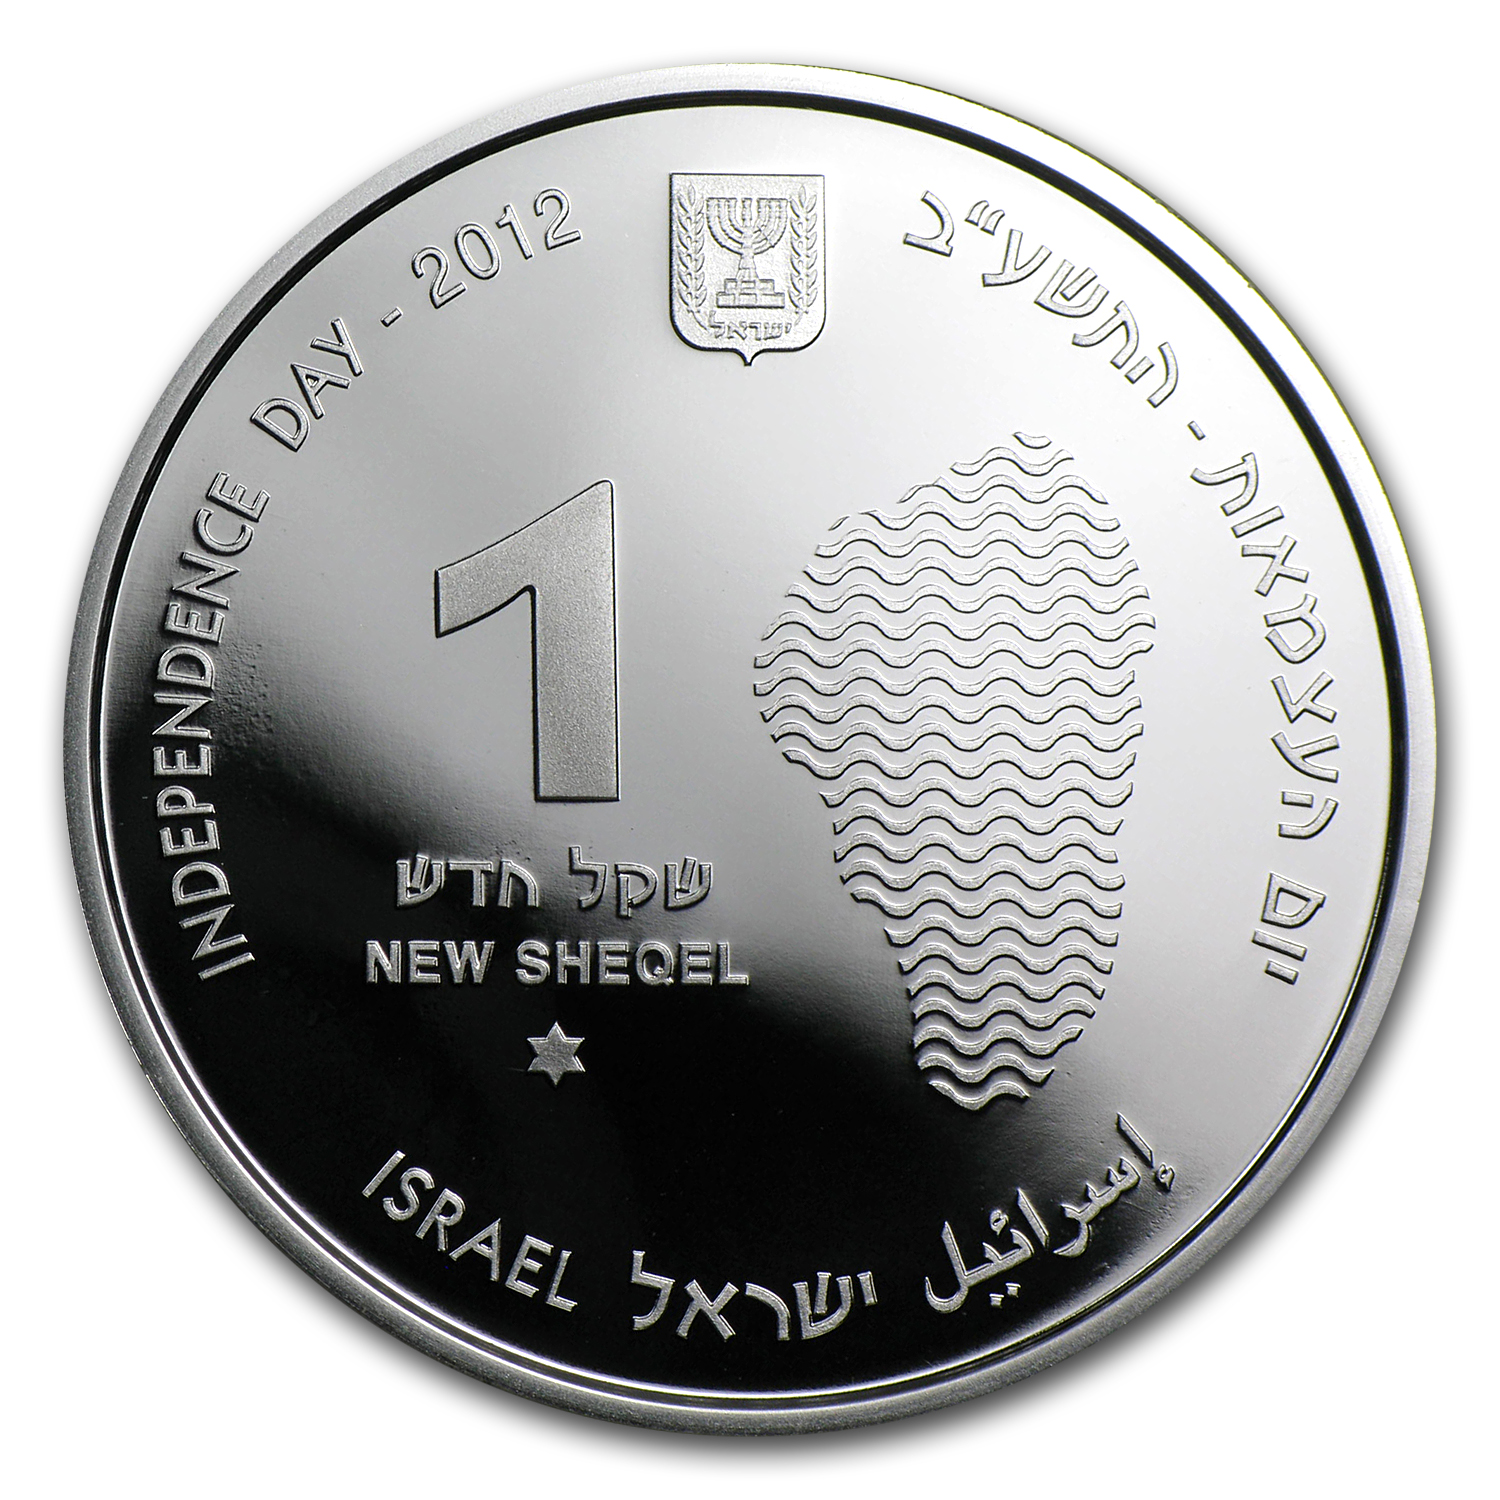 2012 Israel Sea of Galilee Silver 1 NIS Proof-like Coin